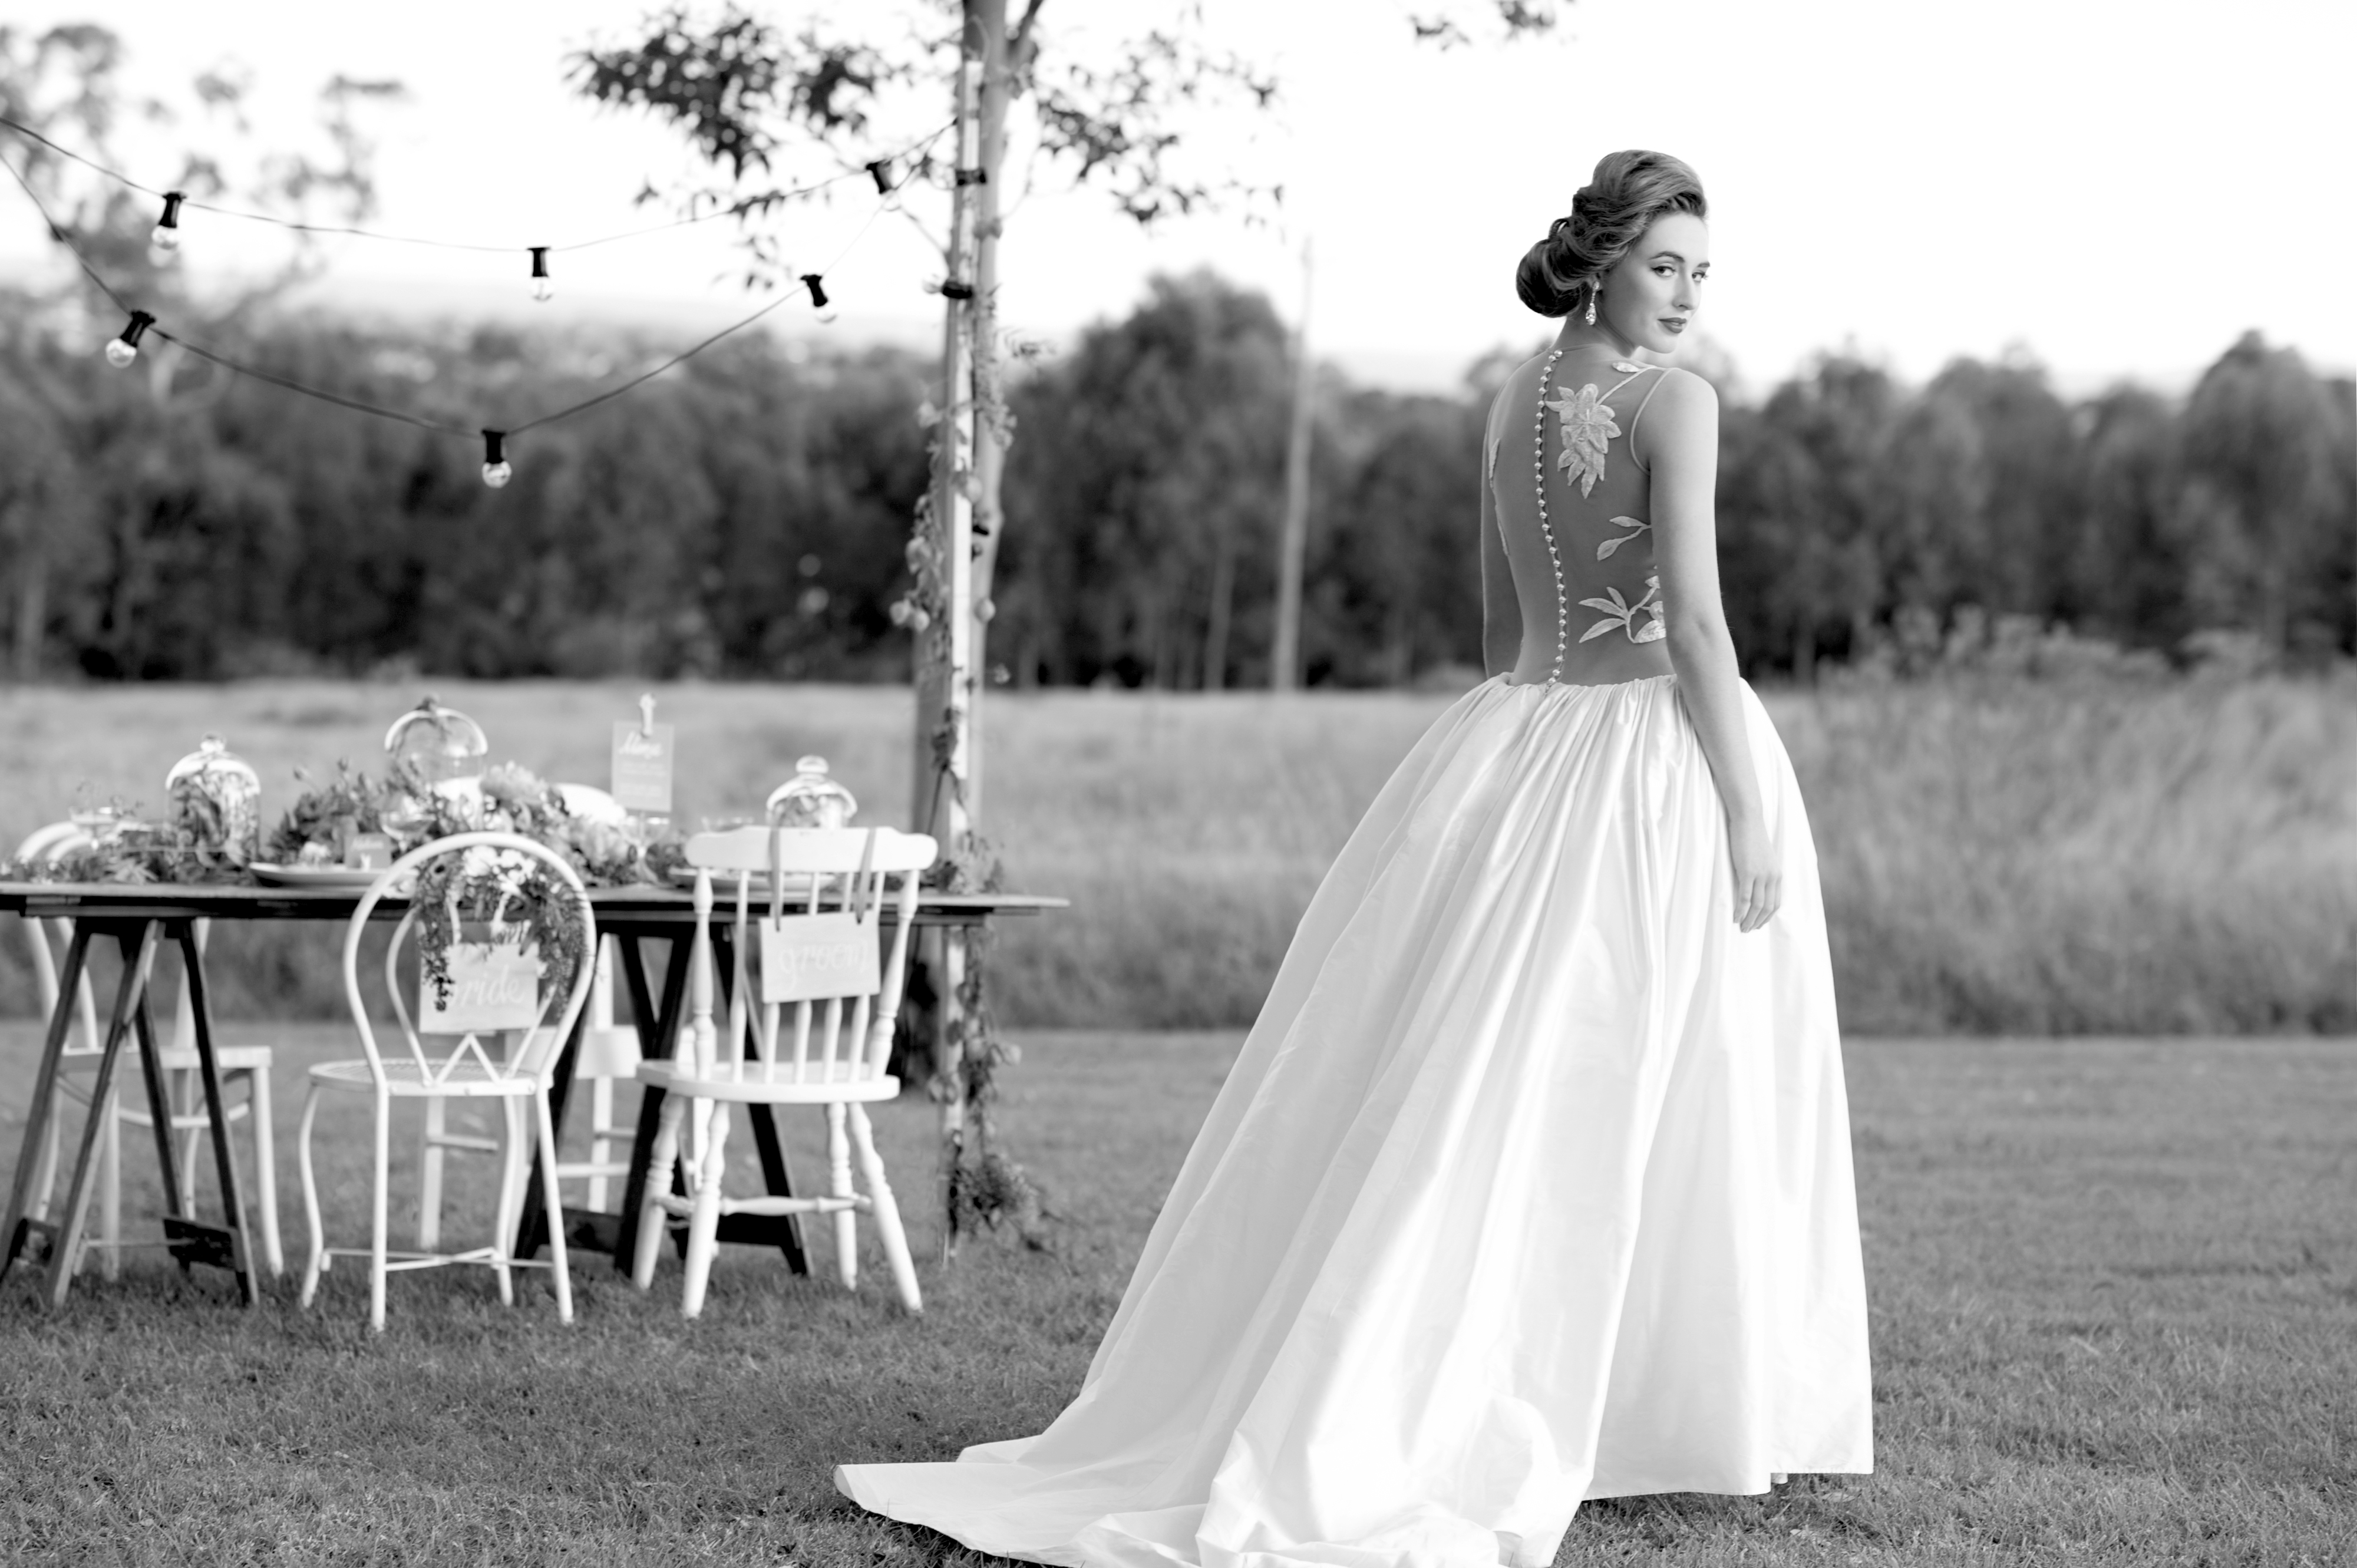 The 'Ylenia' Couture Wedding Gown